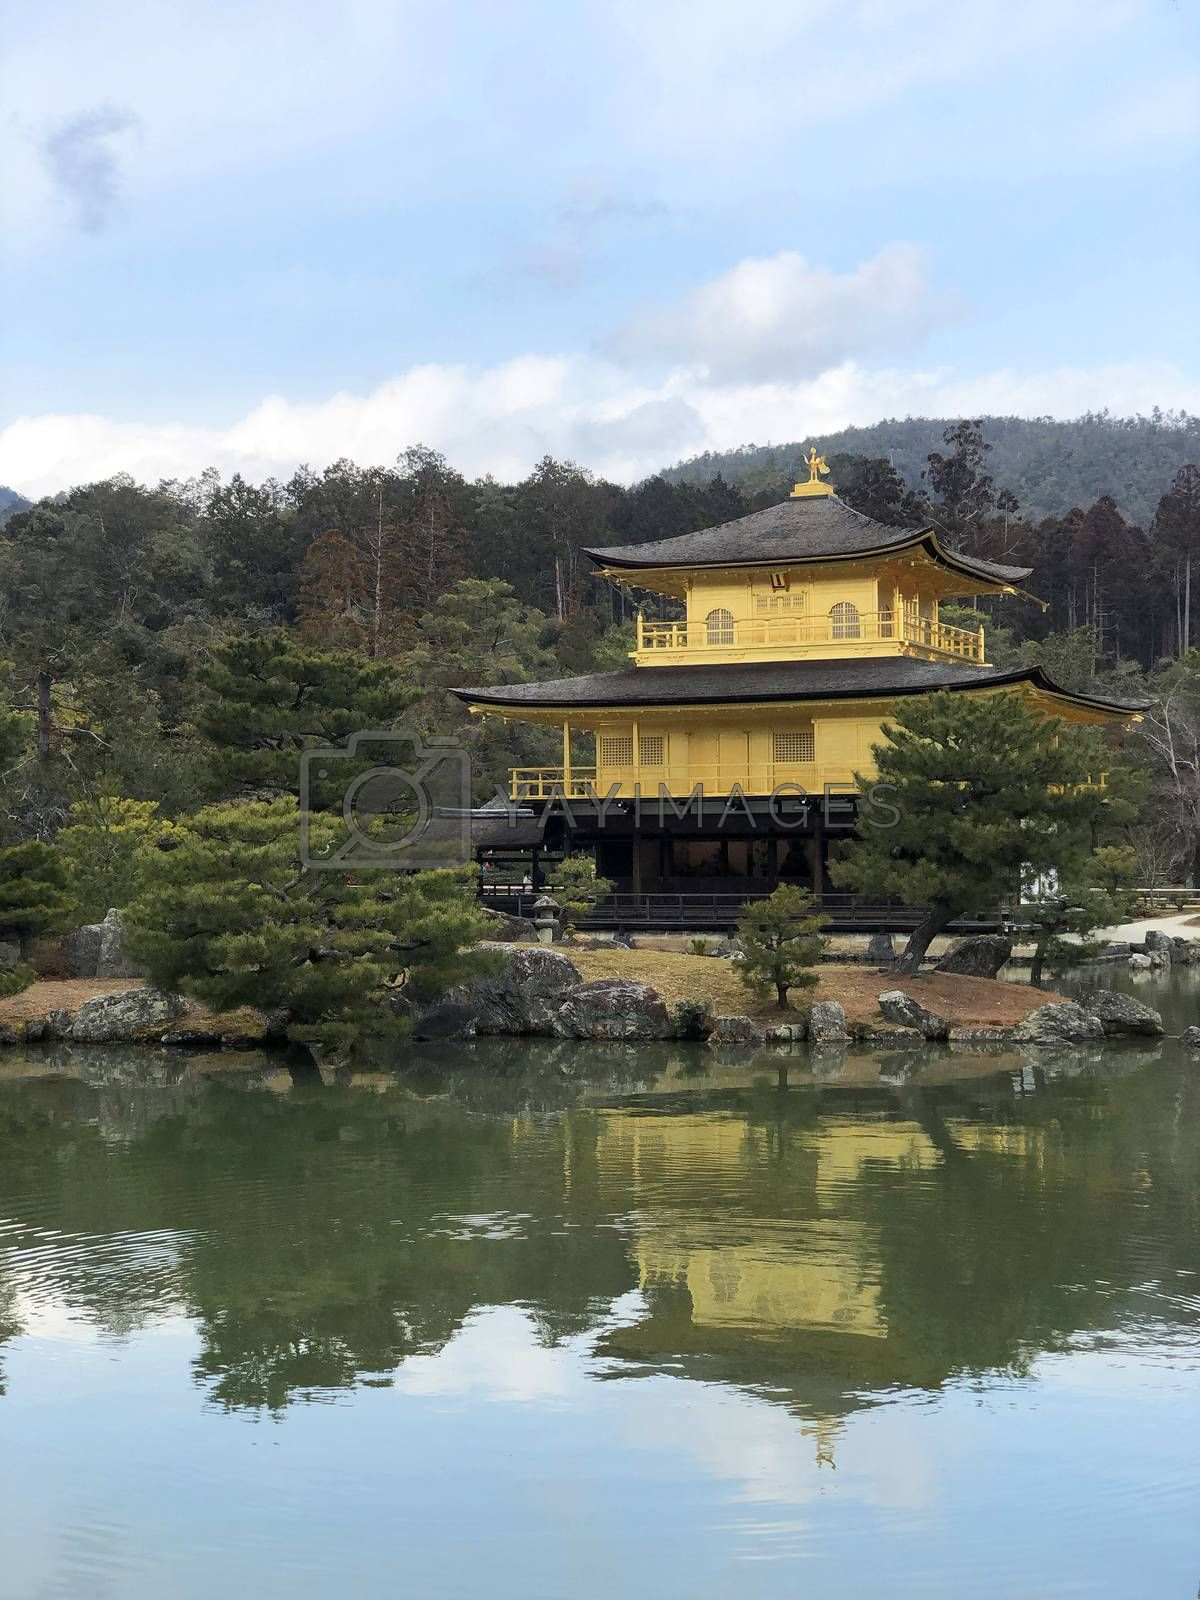 inkaku-ji, the Golden Pavilion,  temple in Kyoto, Japn